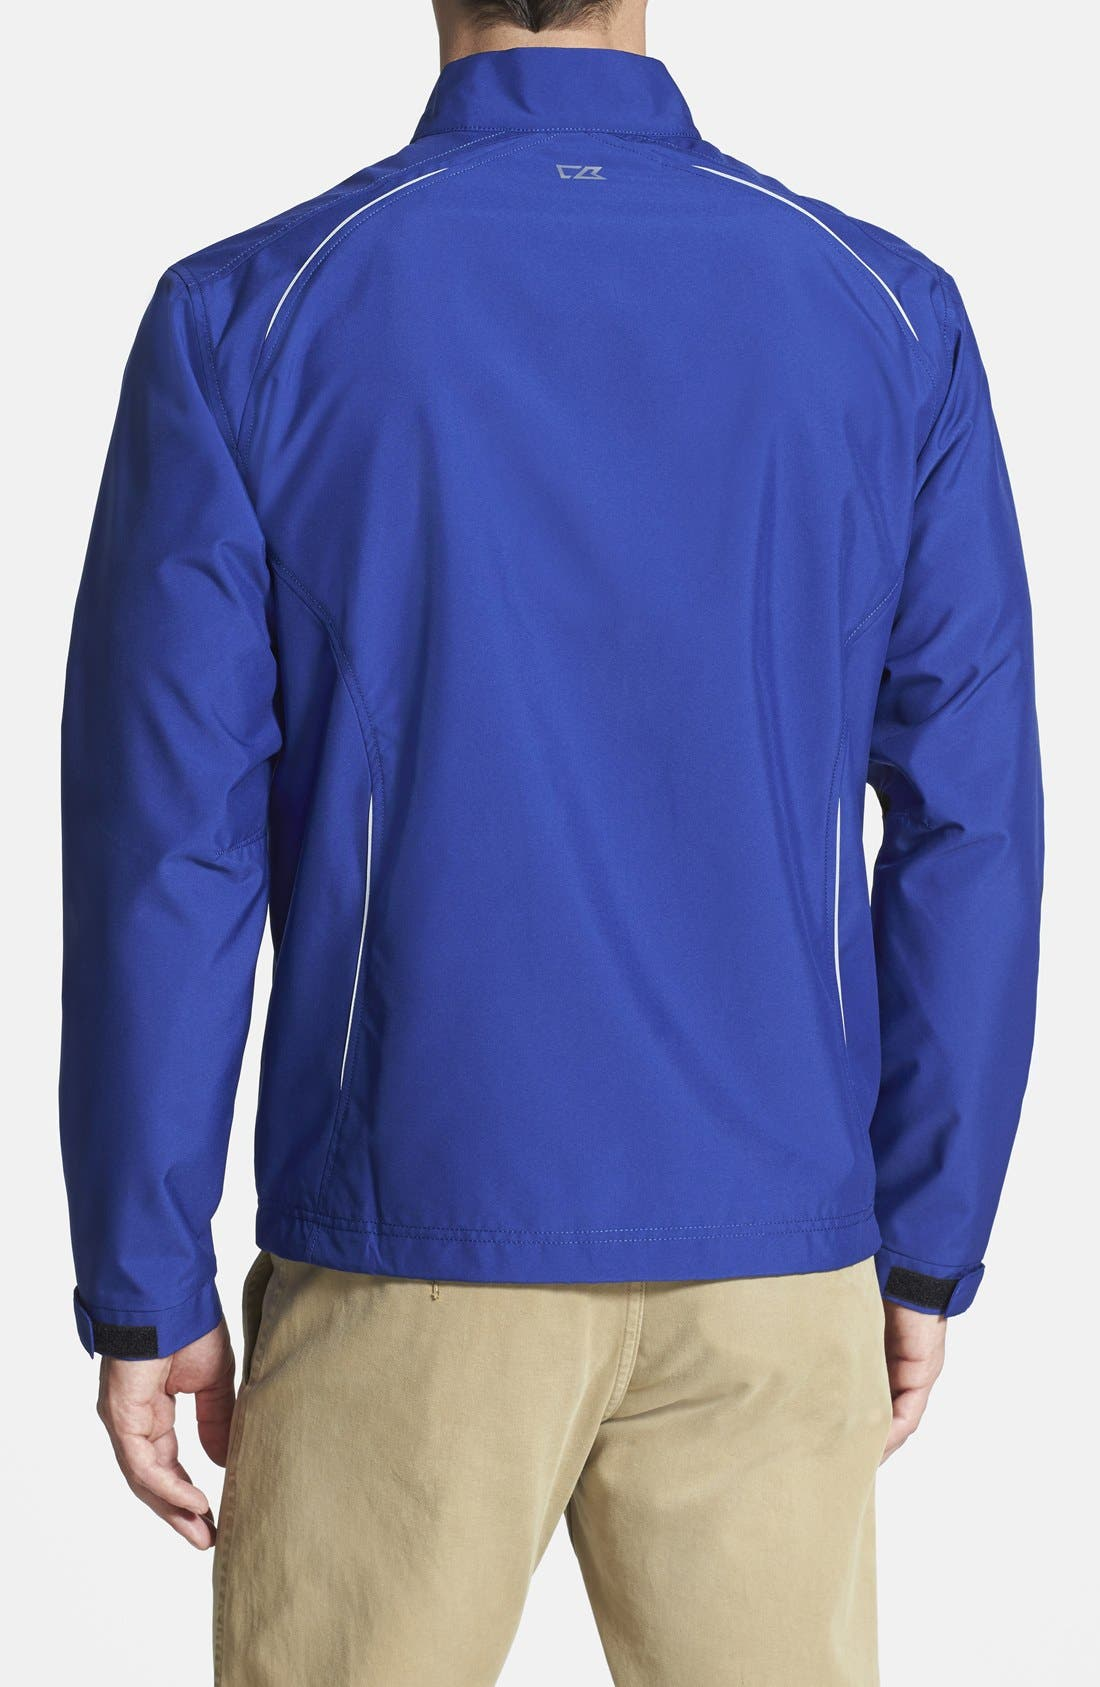 New York Giants - Beacon WeatherTec Wind & Water Resistant Jacket,                             Alternate thumbnail 2, color,                             Tour Blue